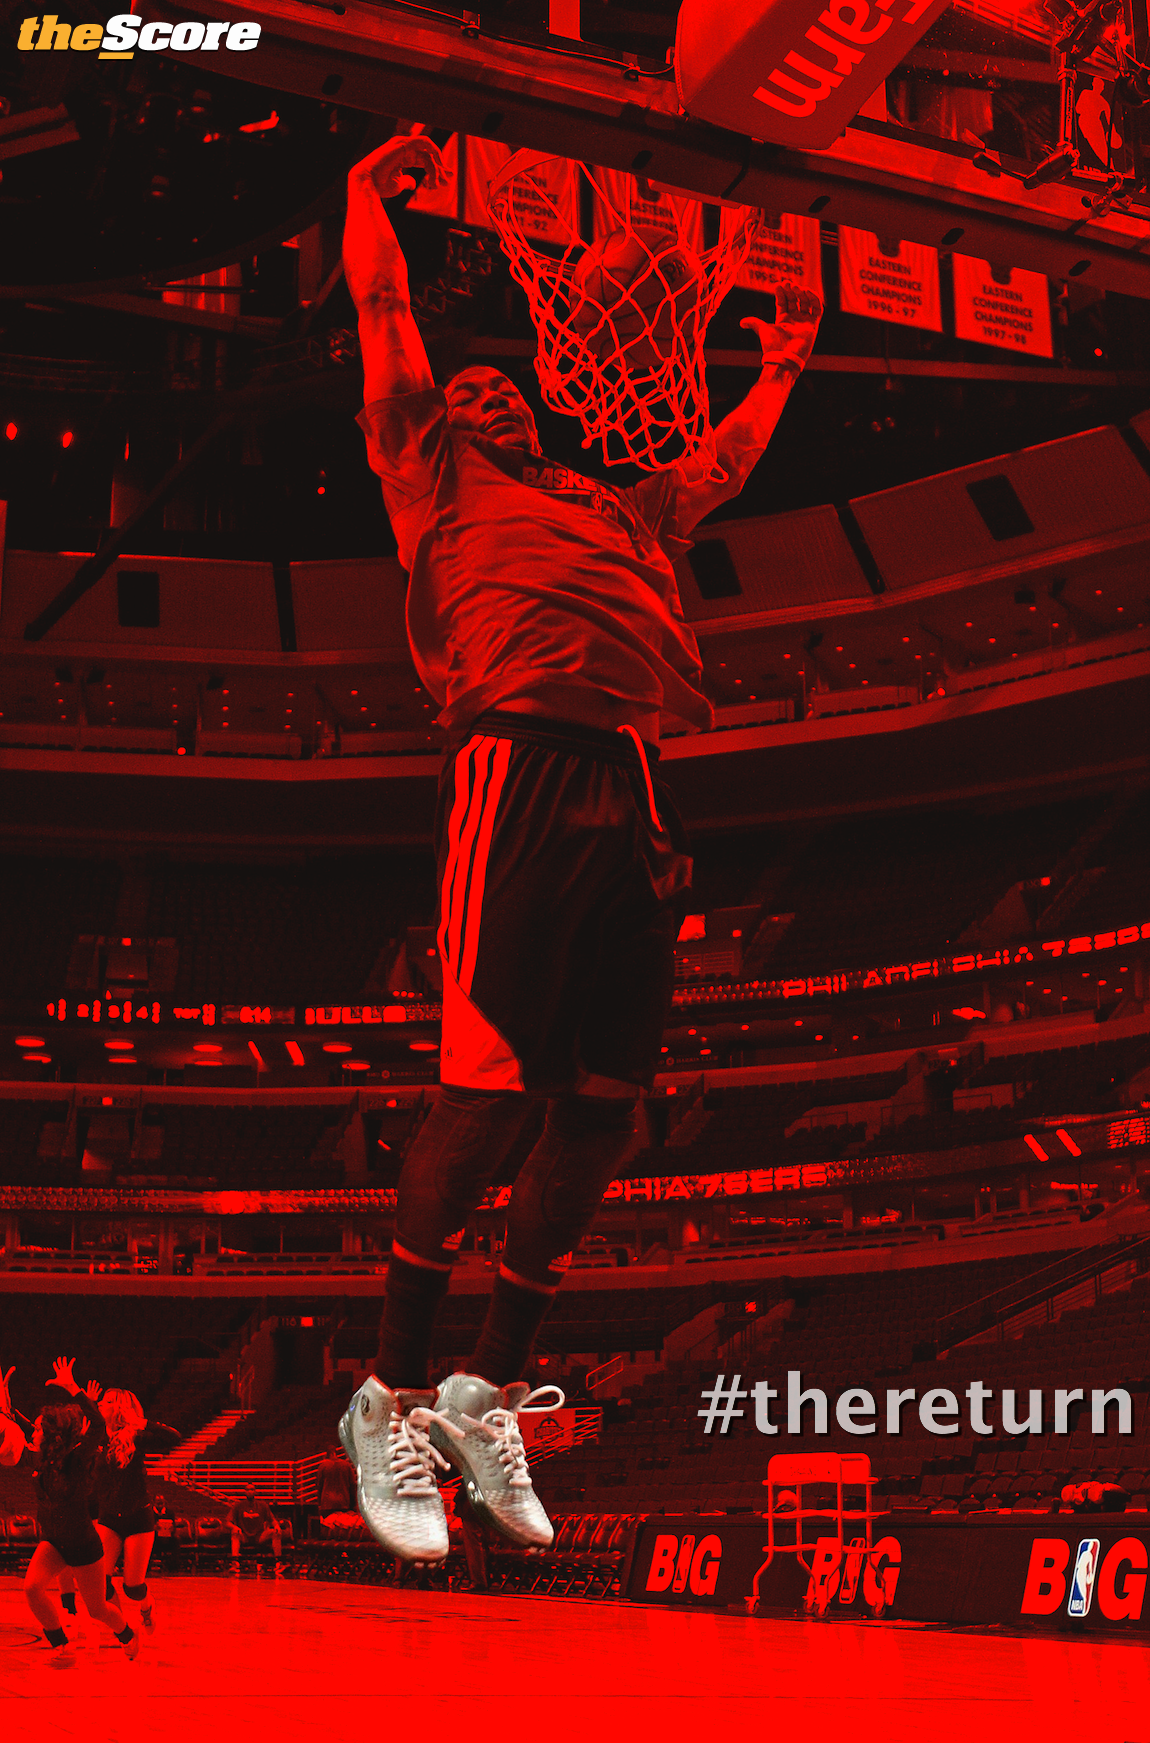 Pic: Derrick Rose is beginning to find his wings. #theReturn